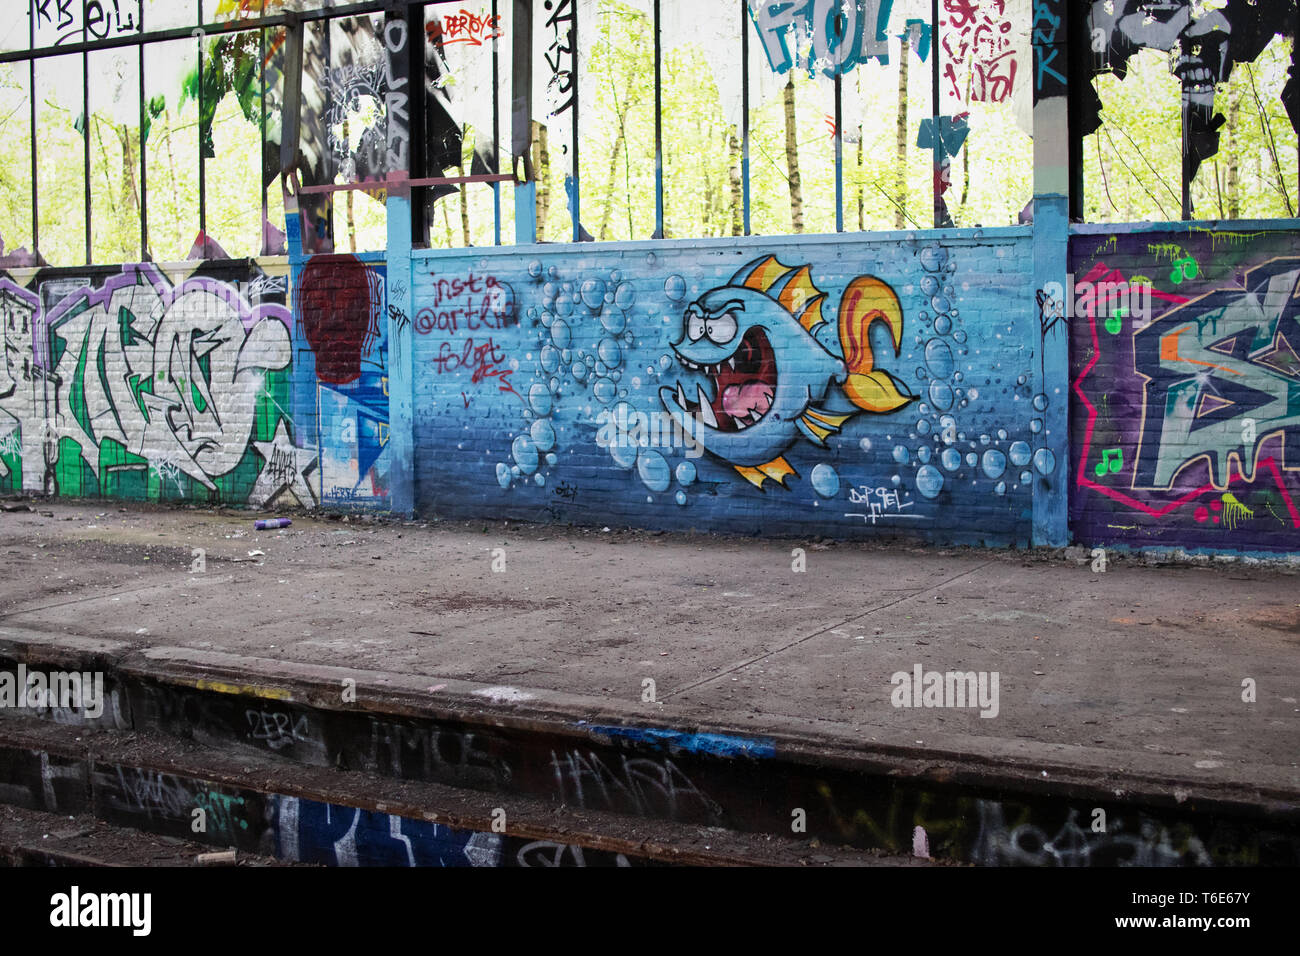 Graffiti Art in a Lost Place in an old train station (Dortmund, Germany) - Stock Image